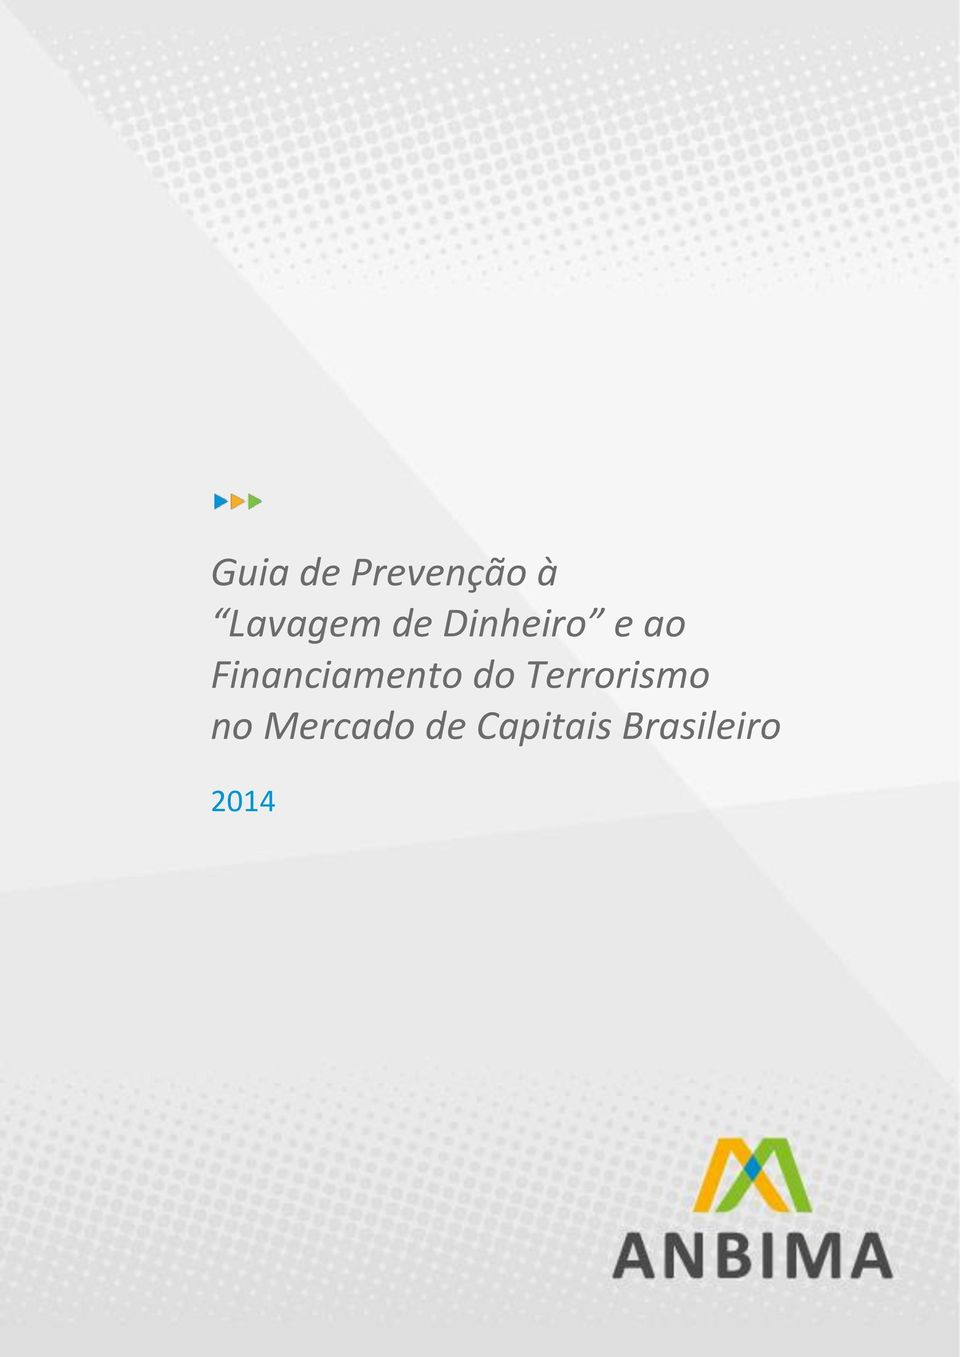 Financiamento do Terrorismo